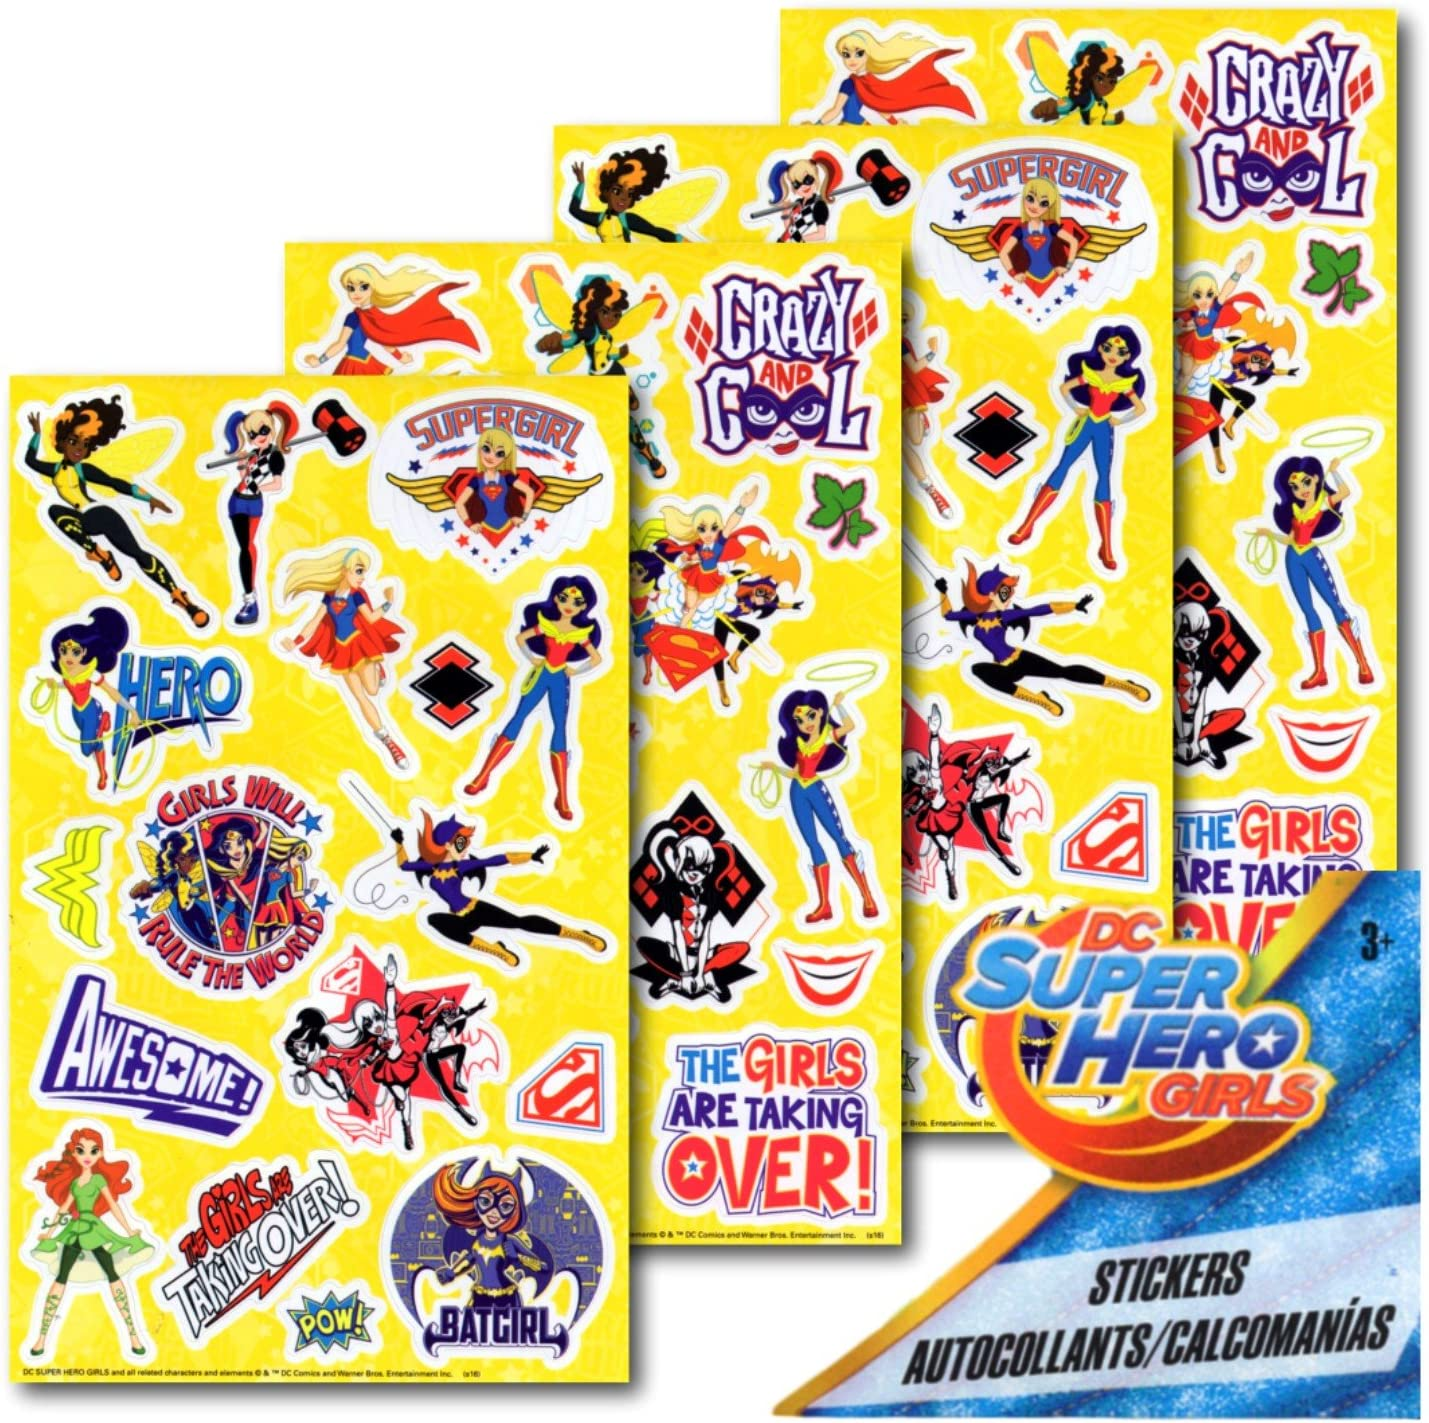 8 Sheets of Superhero Girls Stickers Featuring Wonder Woman Superhero Party Supplies Batgirl and More Supergirl DC Super Hero Girls Stickers Party Favors Bundle